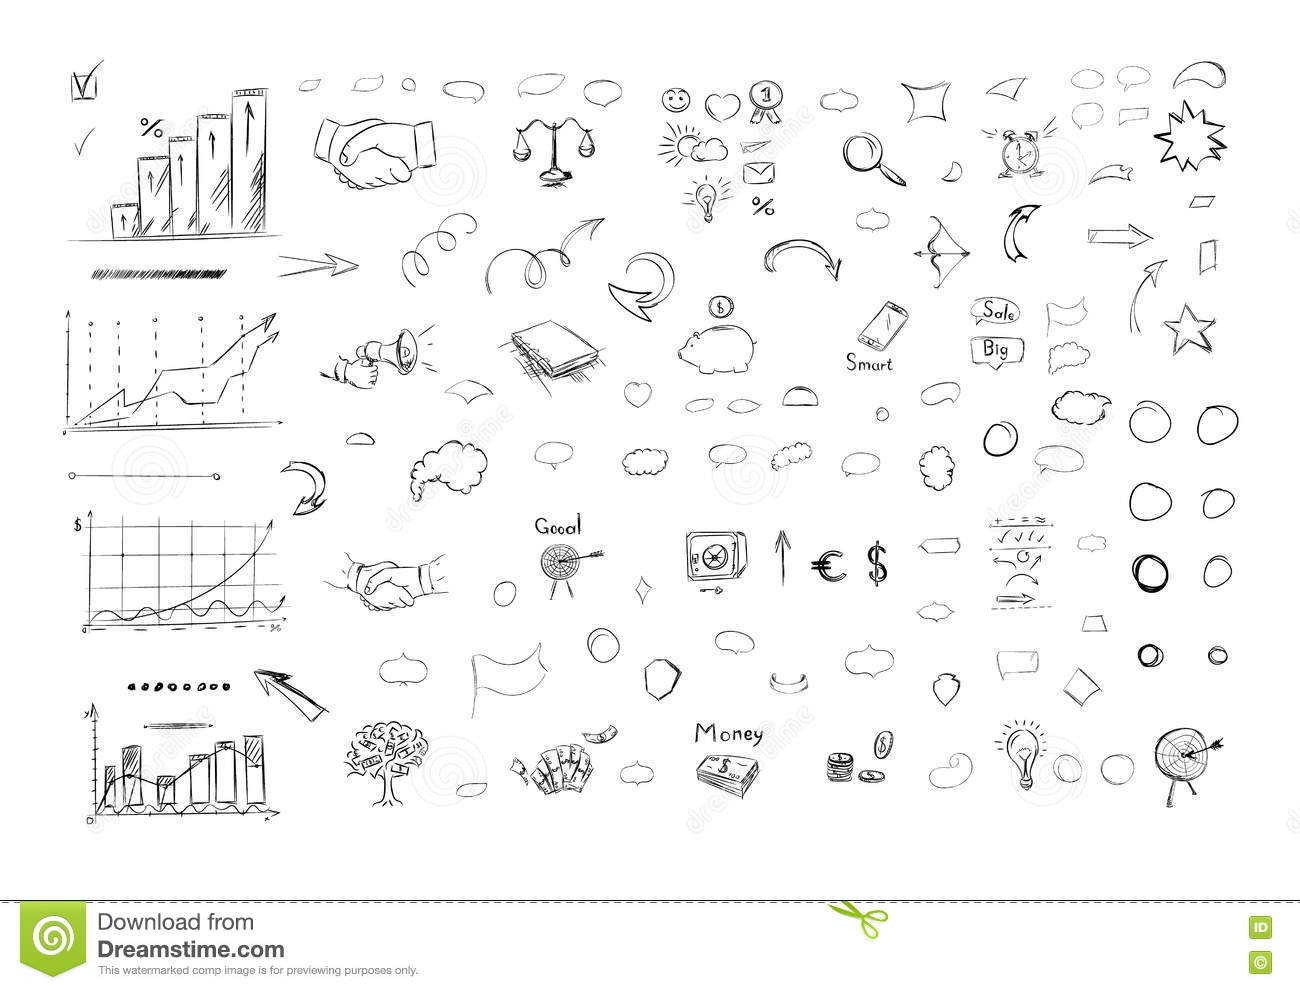 Sketch Of Business Elements In Outline Stock Vector Illustration